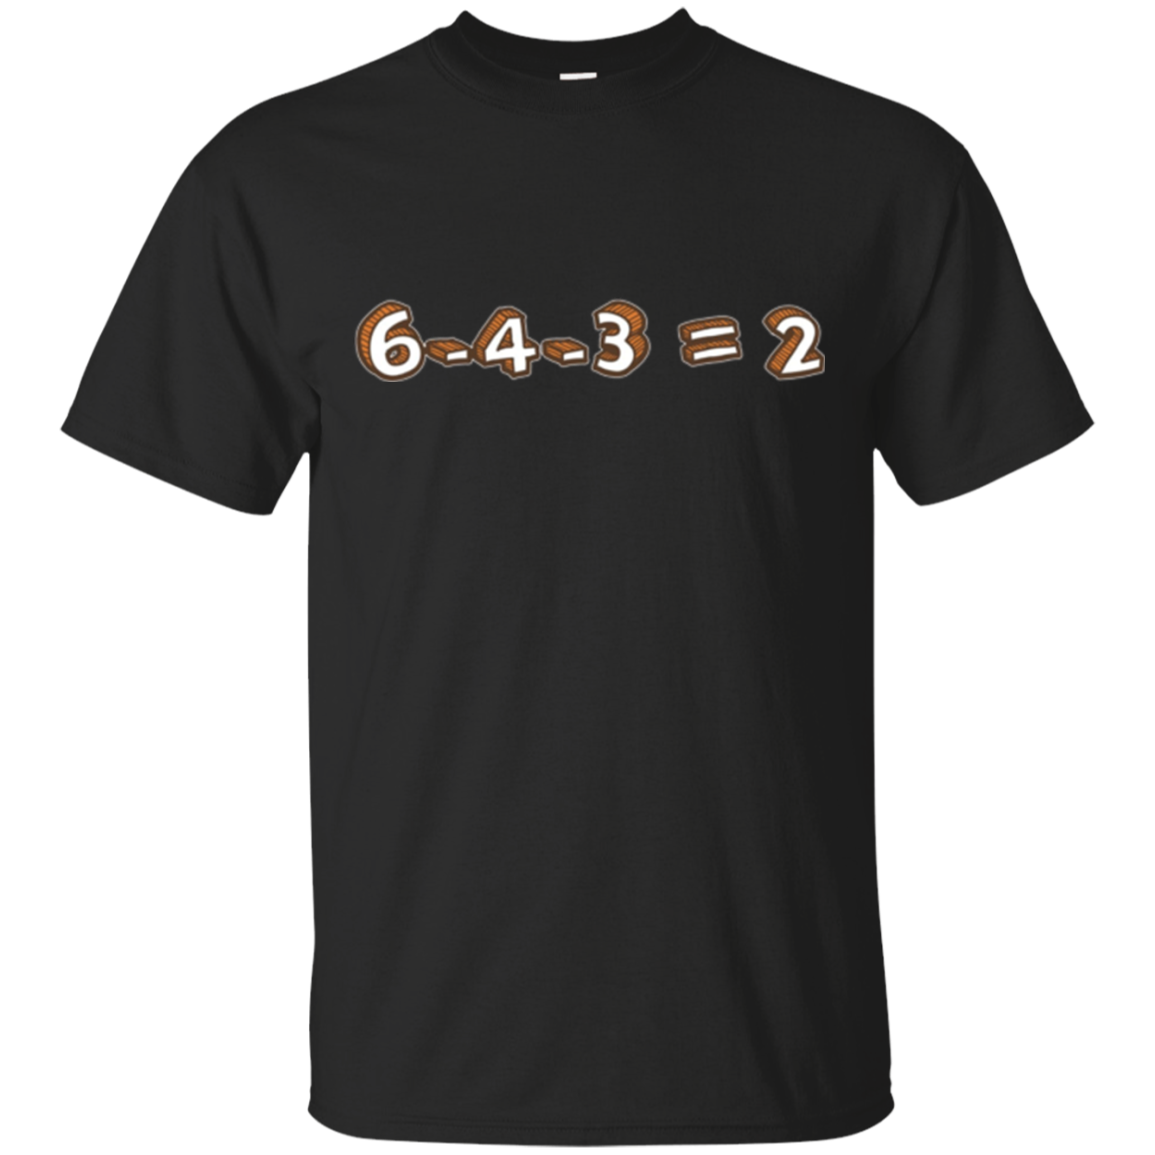 6-4-3=2 Baseball Double Play Inside Joke T-Shirt